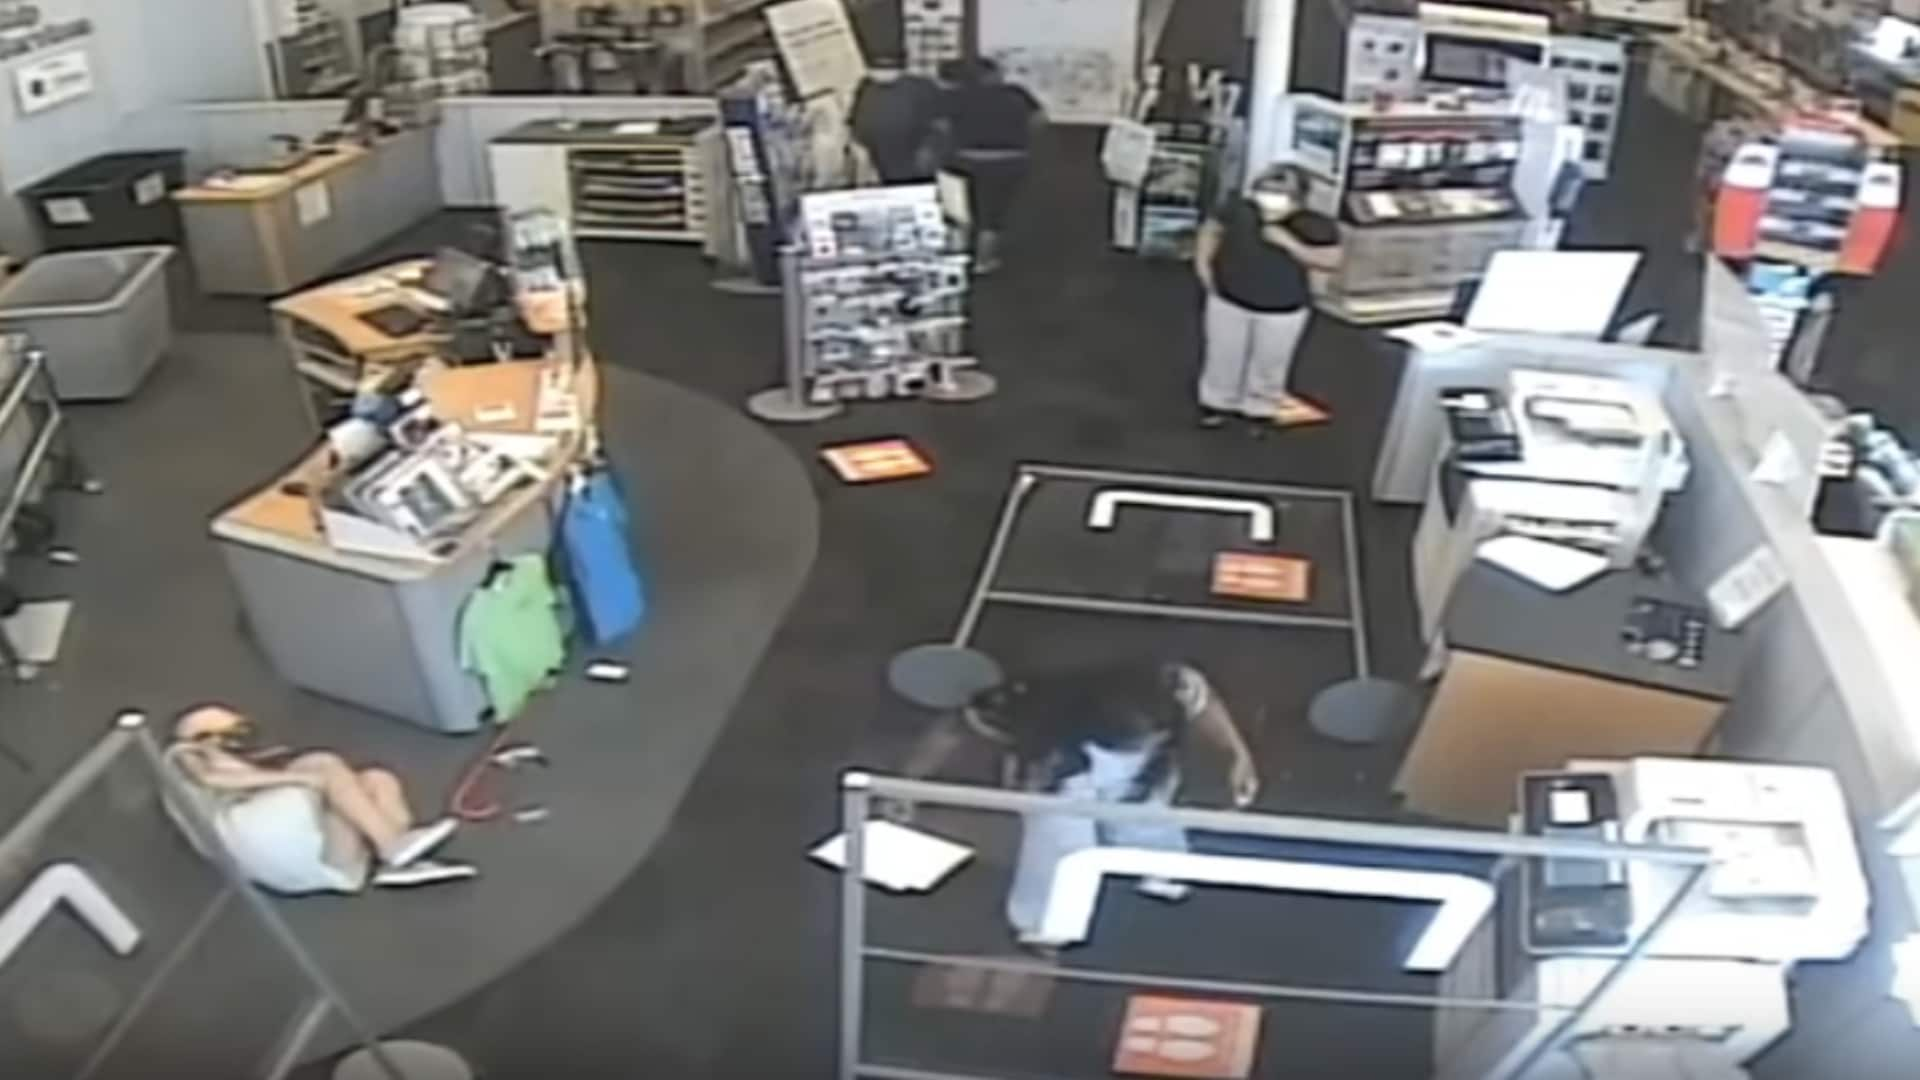 Customer throws woman, breaks her leg after being told to wear mask